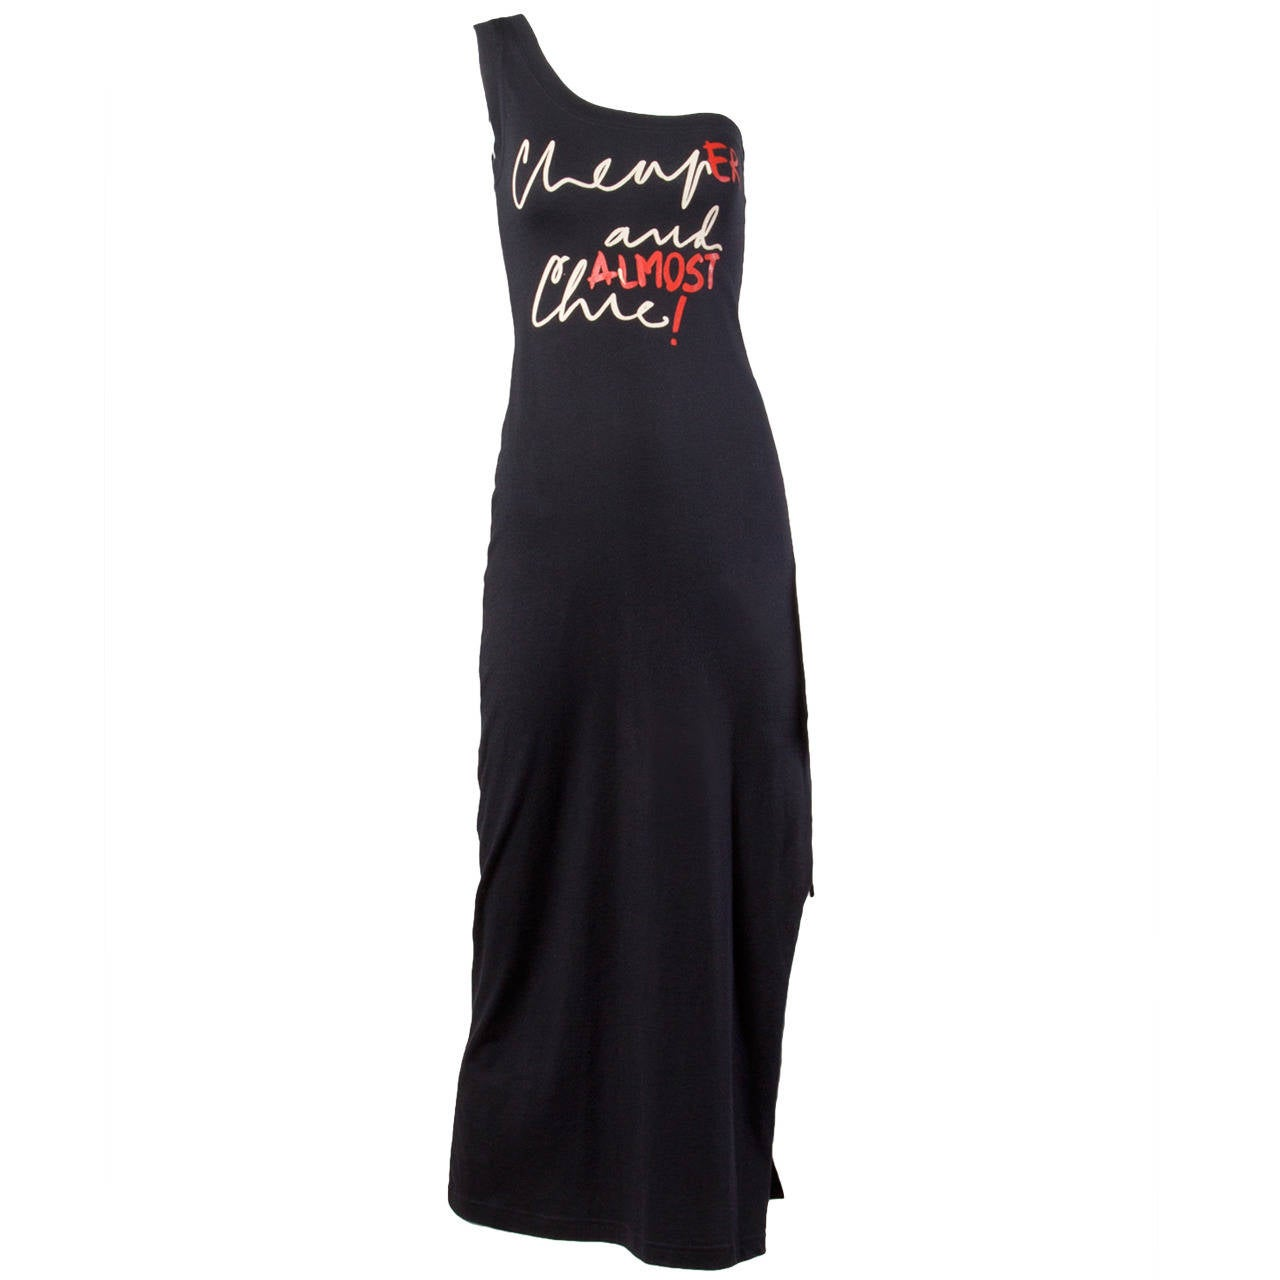 "Unworn Moschino Vintage ""CheapEr and ALMOST Chic!"" Maxi Dress 1"